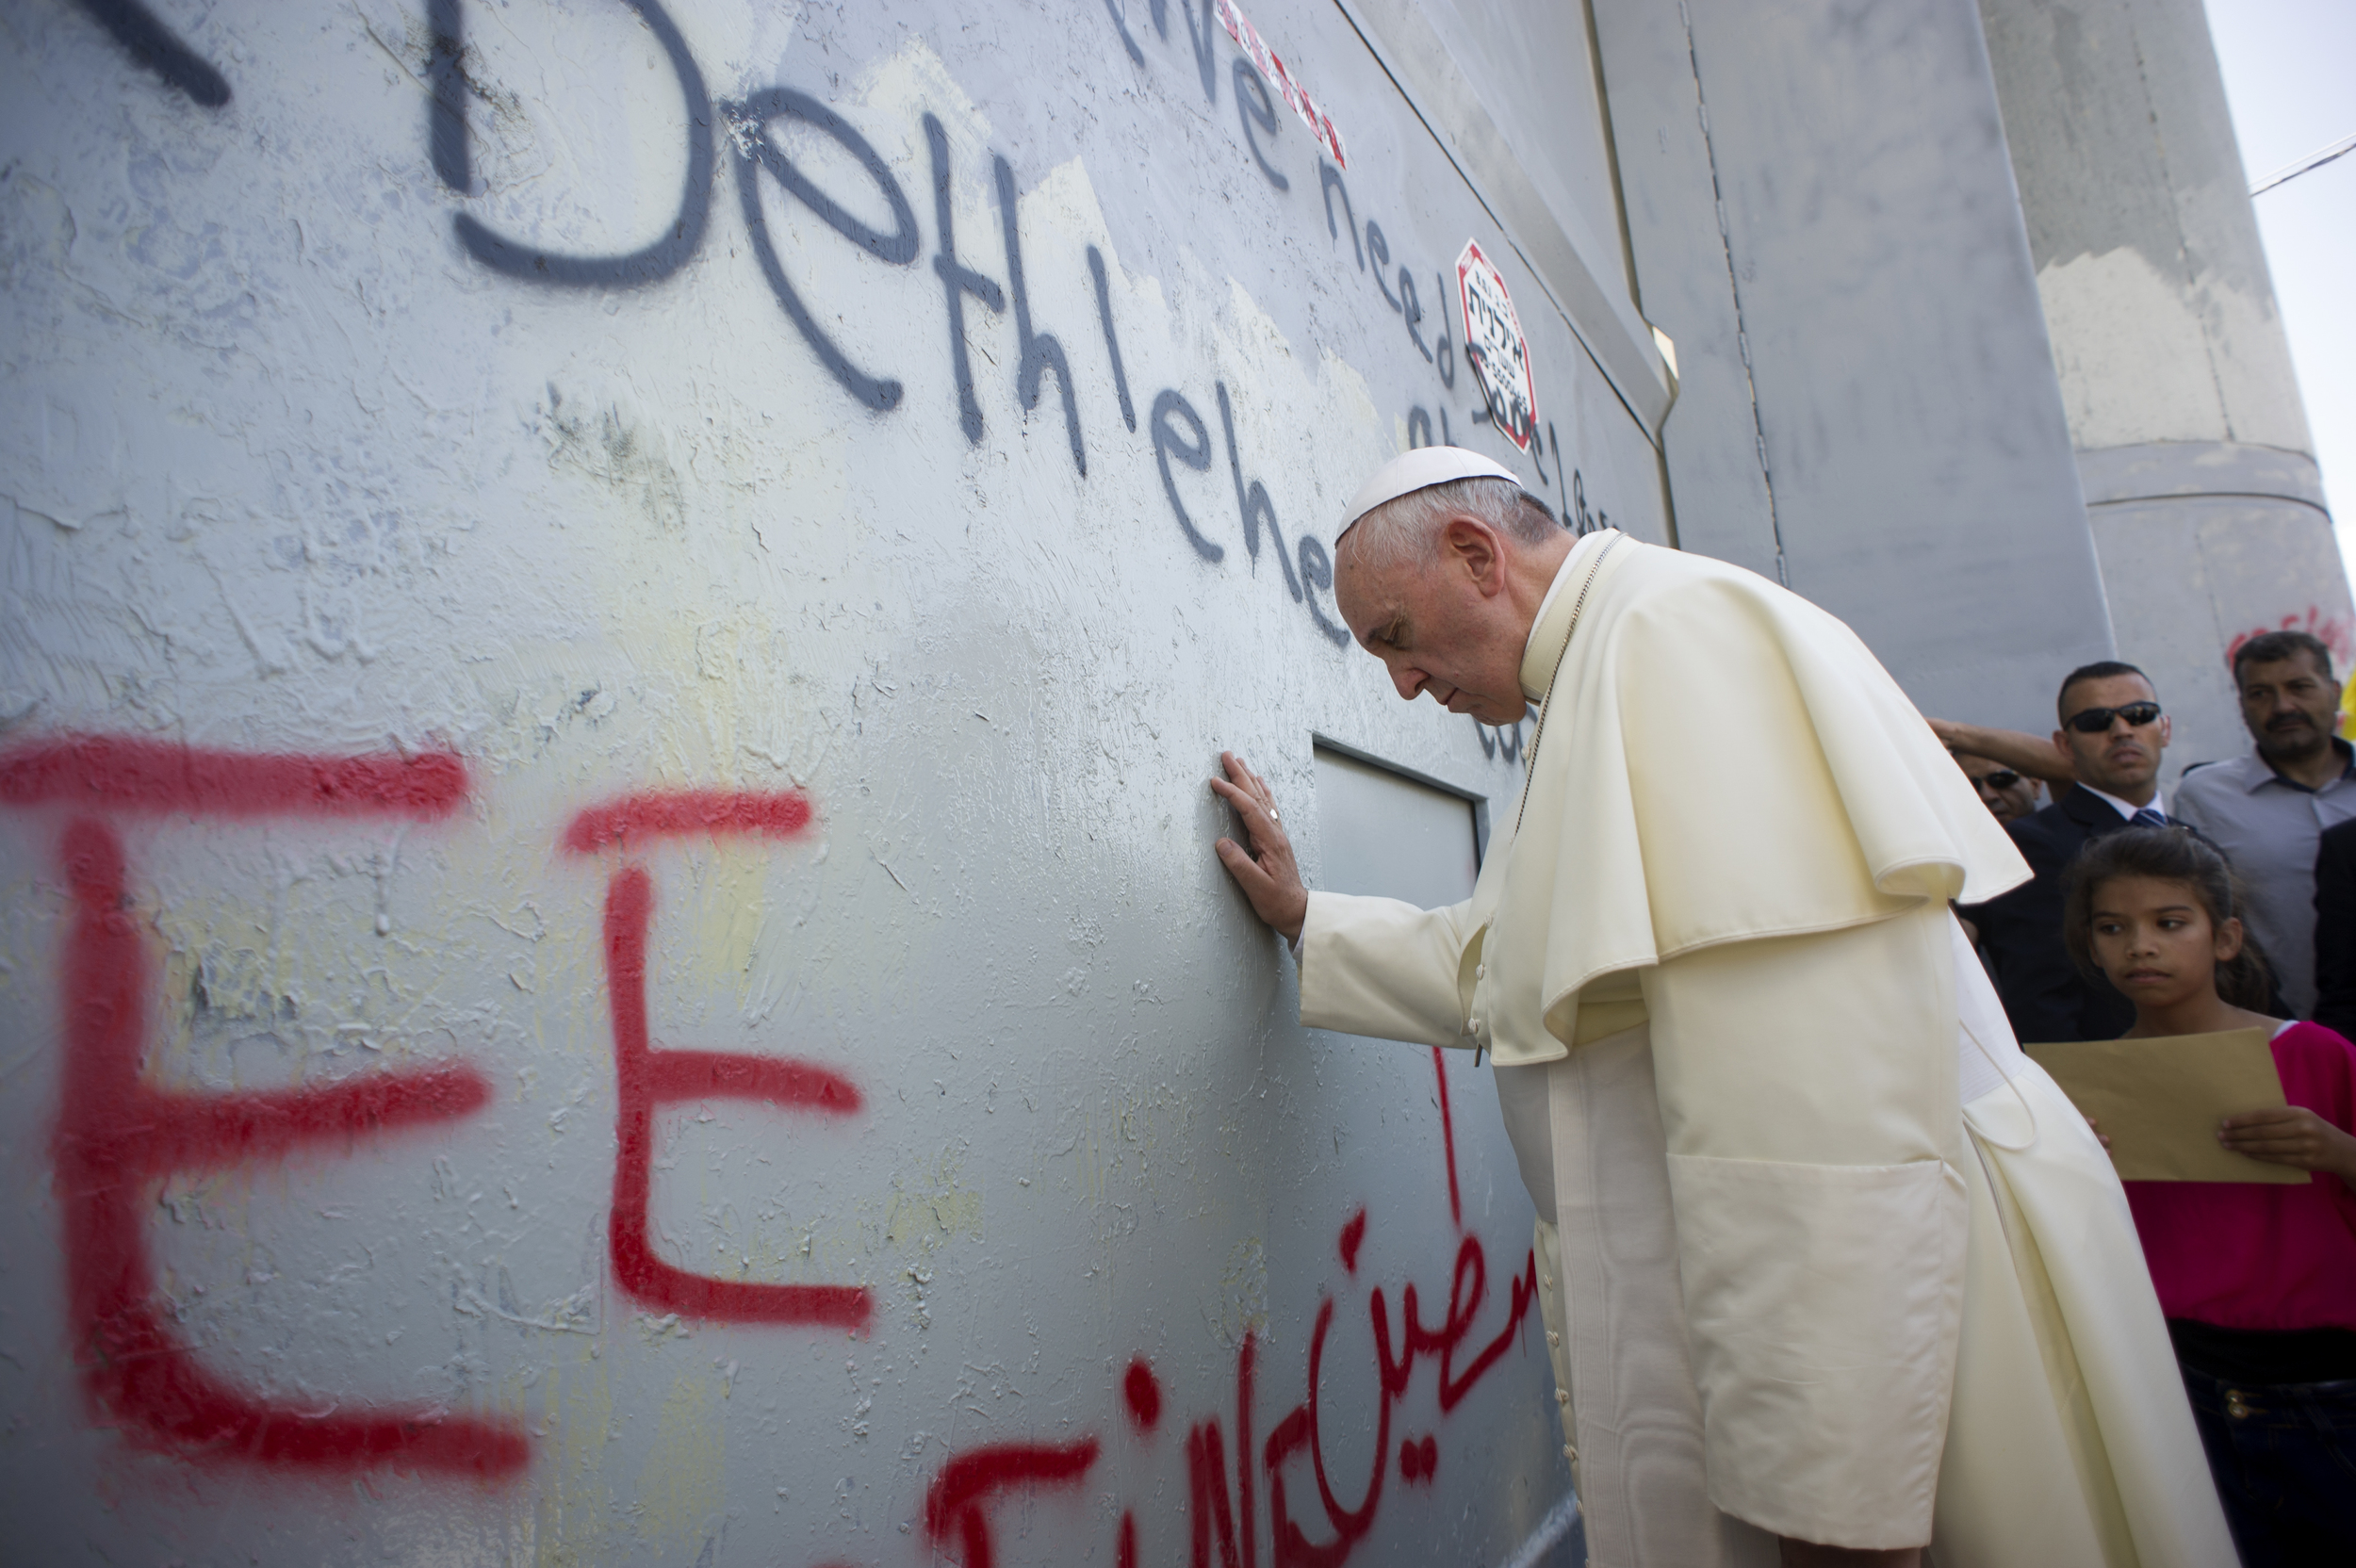 Pope Francis praying at the Separation Wall in Bethleham